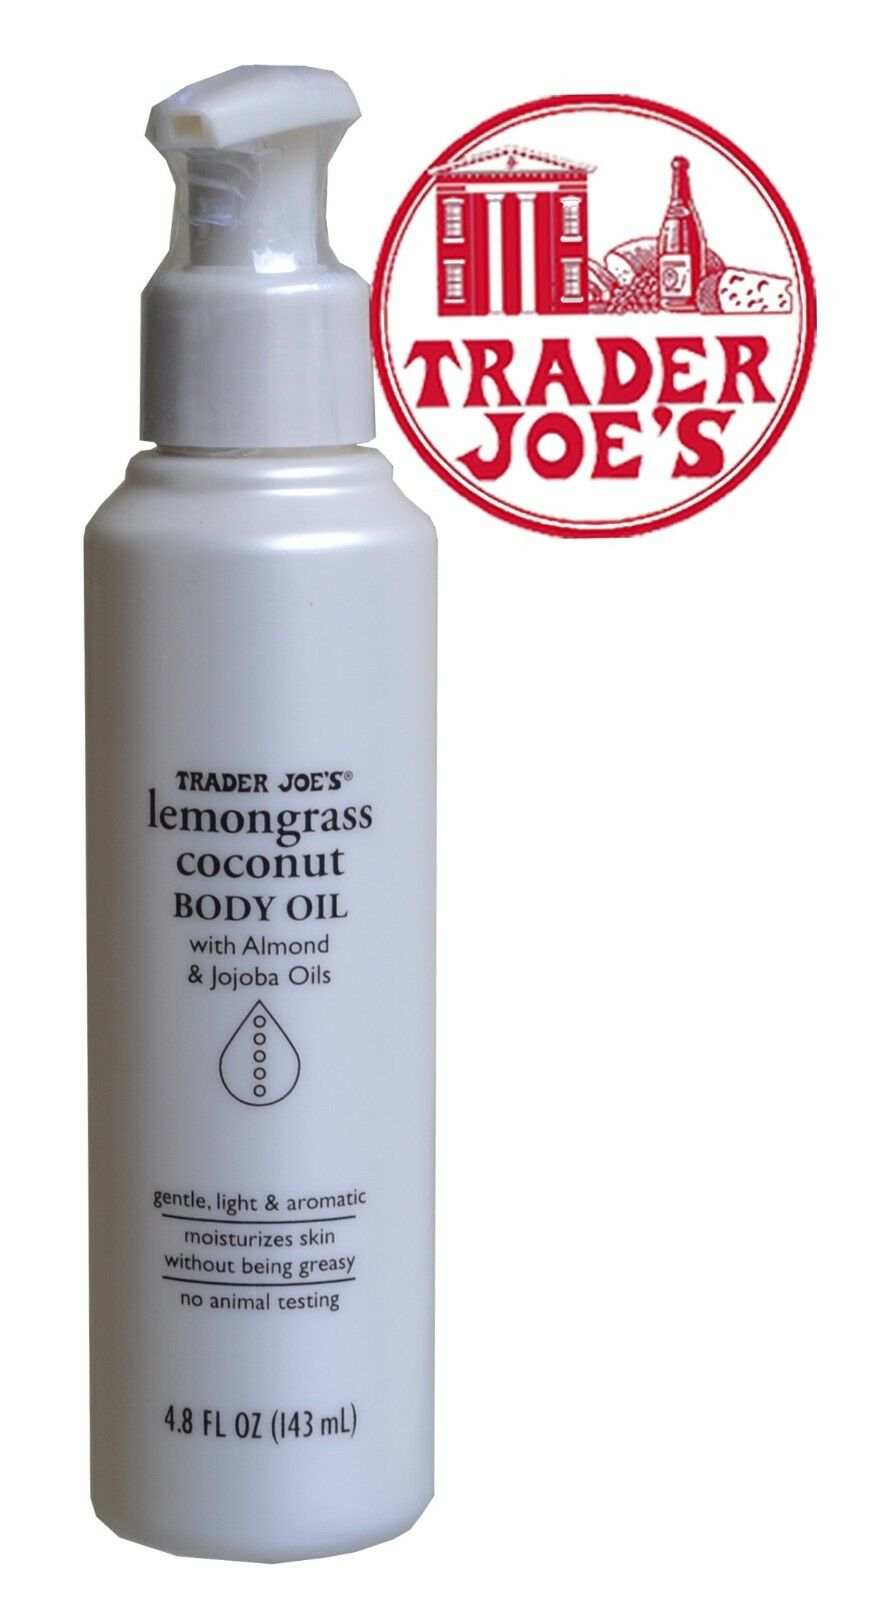 Trader Joes Lemongrass Coconut Body Oil with Almond and Jojo